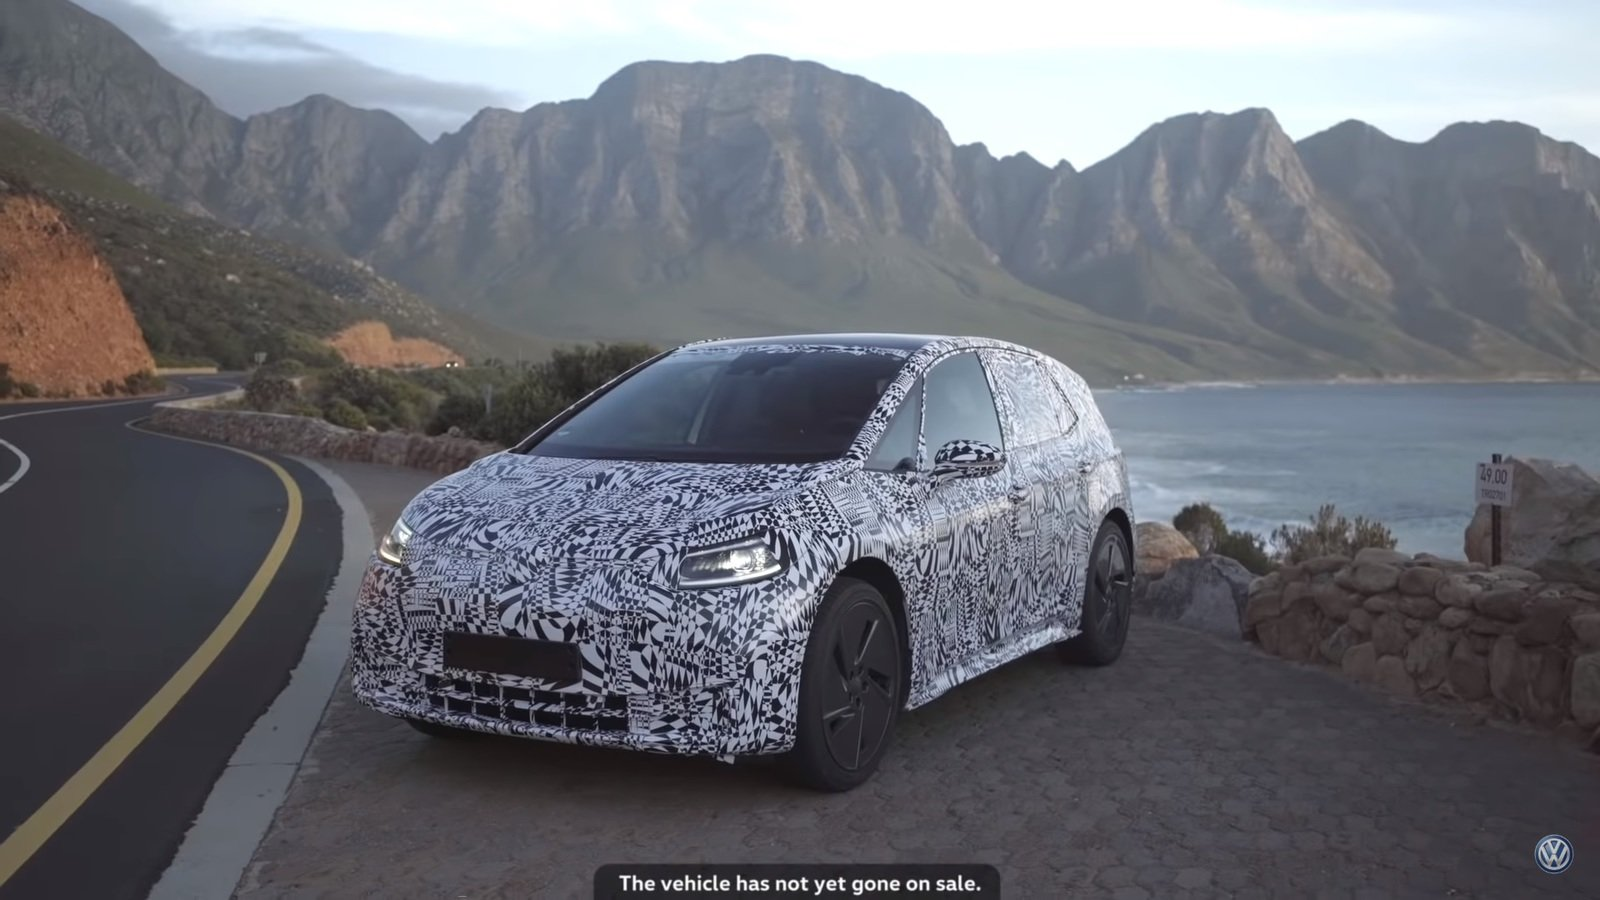 The 2020 Volkswagen ID Visits South Africa As Part Of It's Final Testing Phase | Top Speed